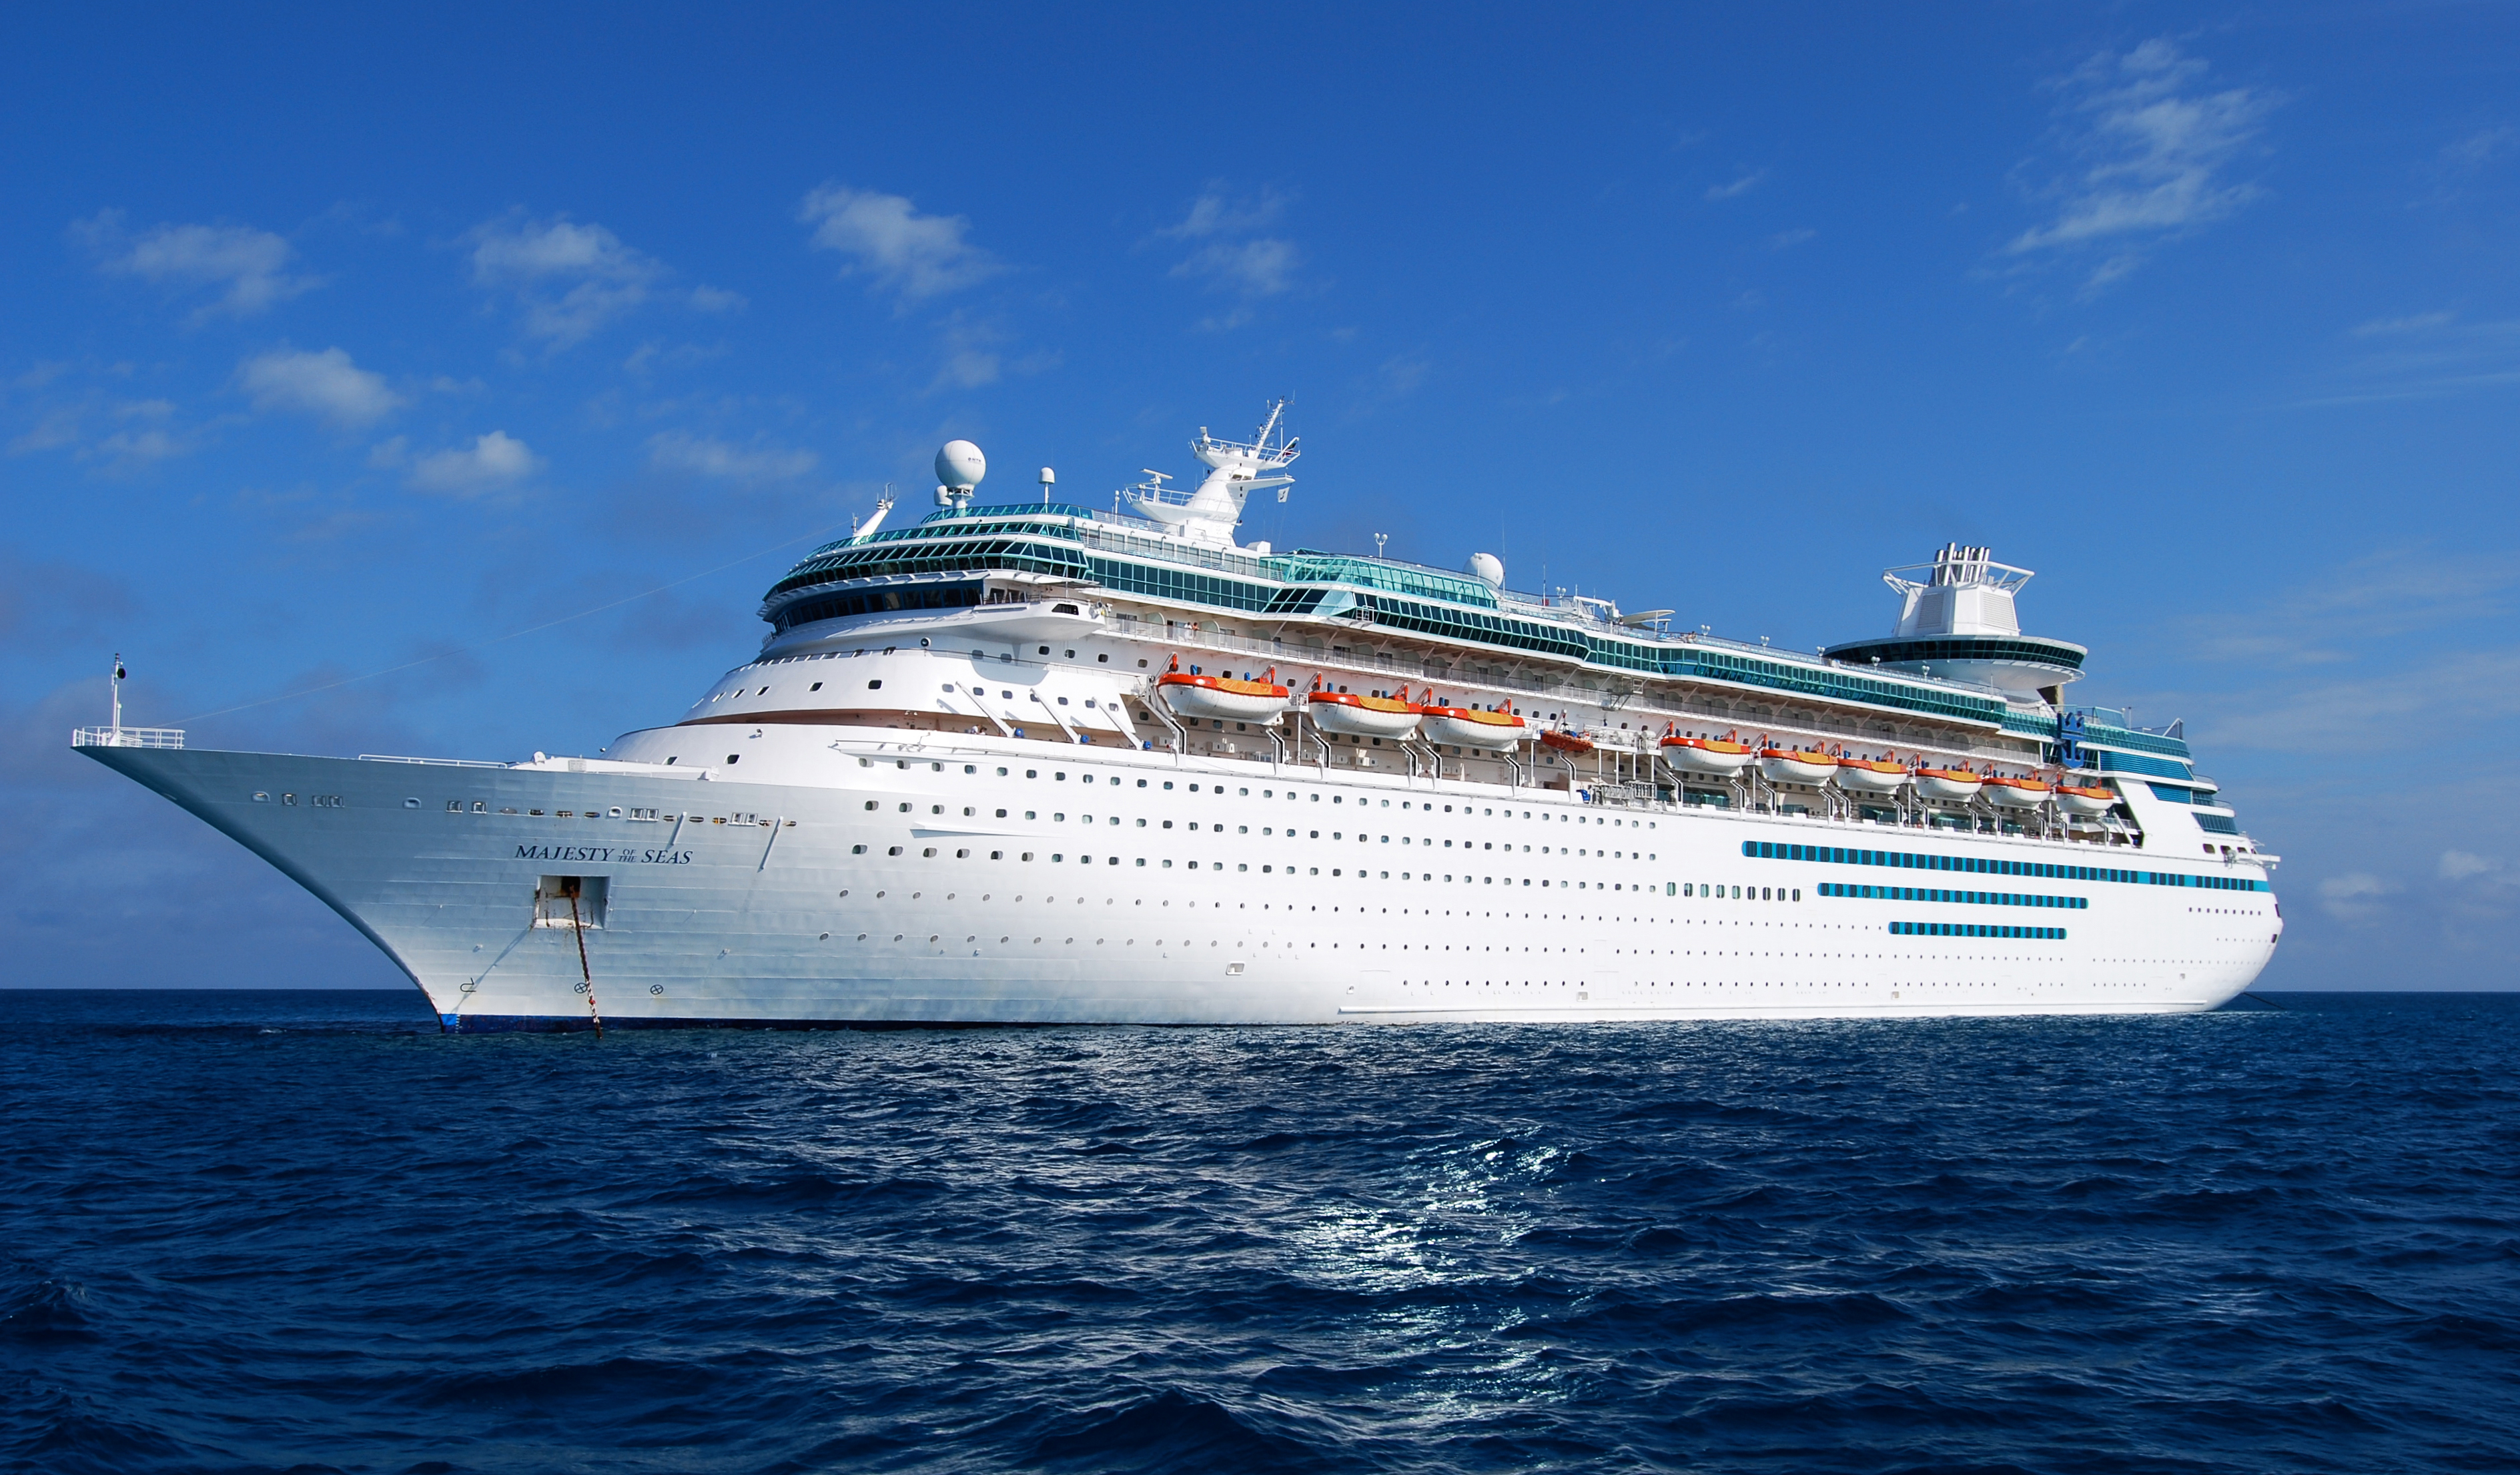 166 Cruise Ship Hd Wallpapers Background Images Wallpaper Abyss